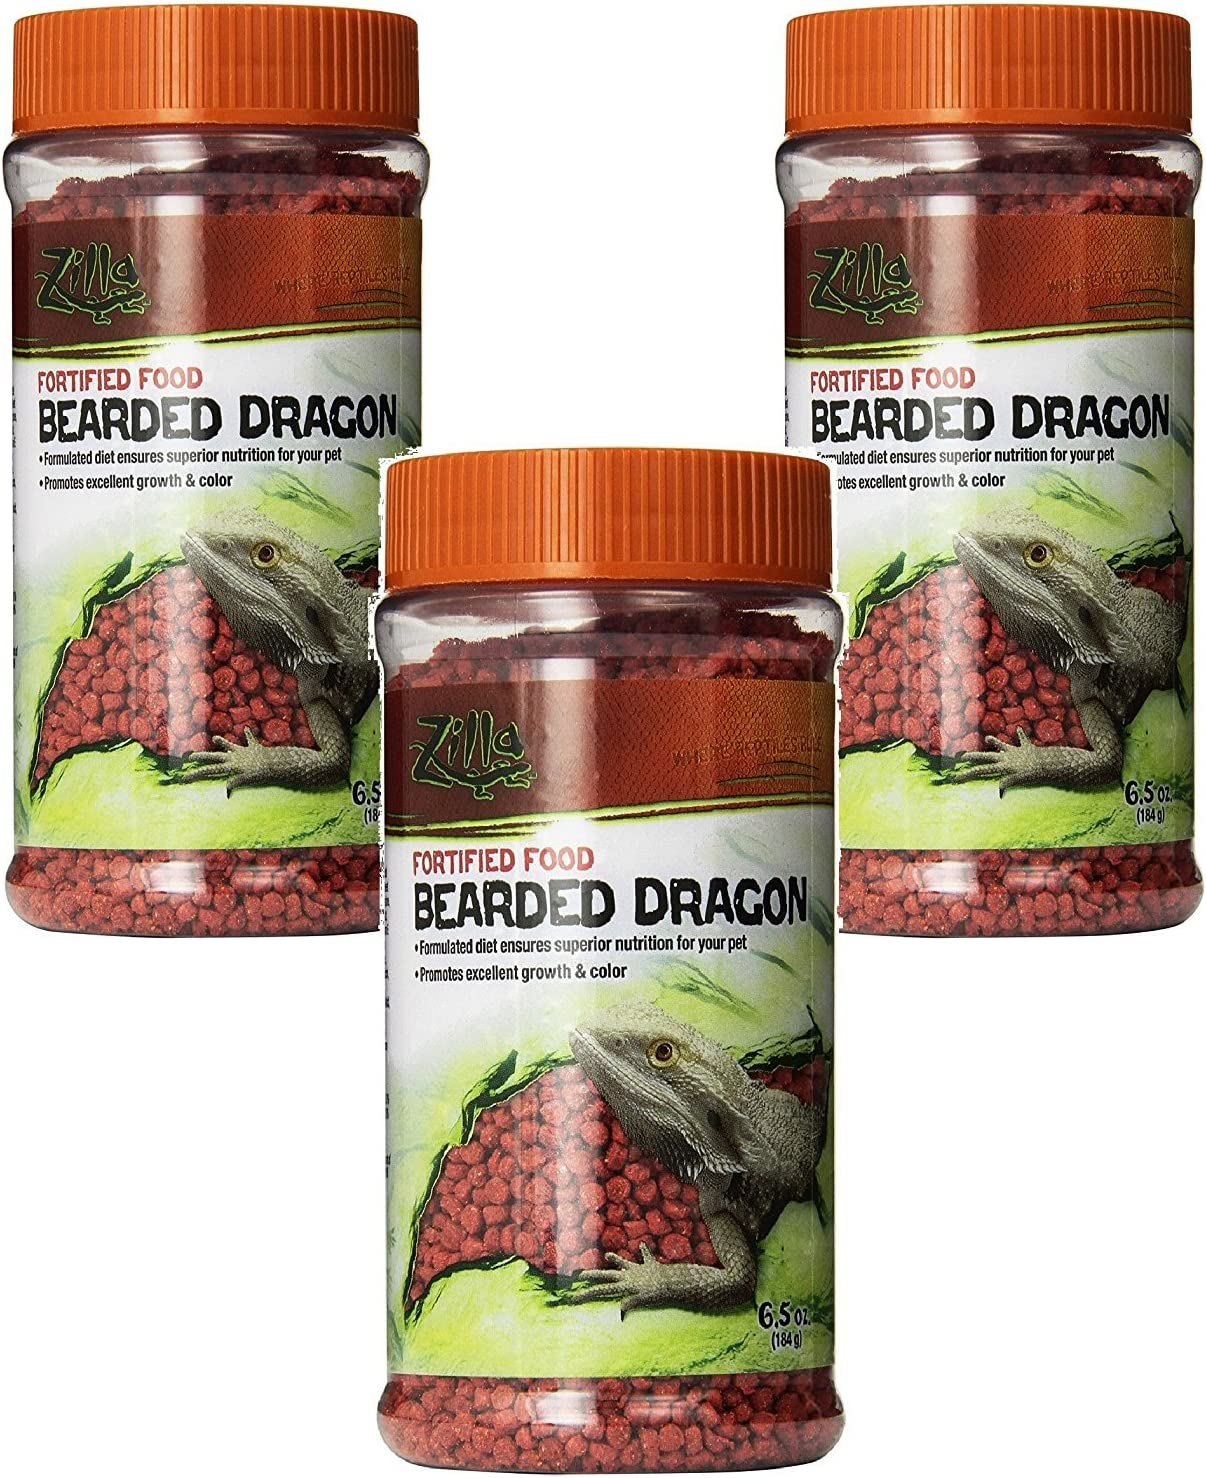 Zilla Reptile Food Bearded Dragon Fortified, 6.5-Ounce (3 Pack)